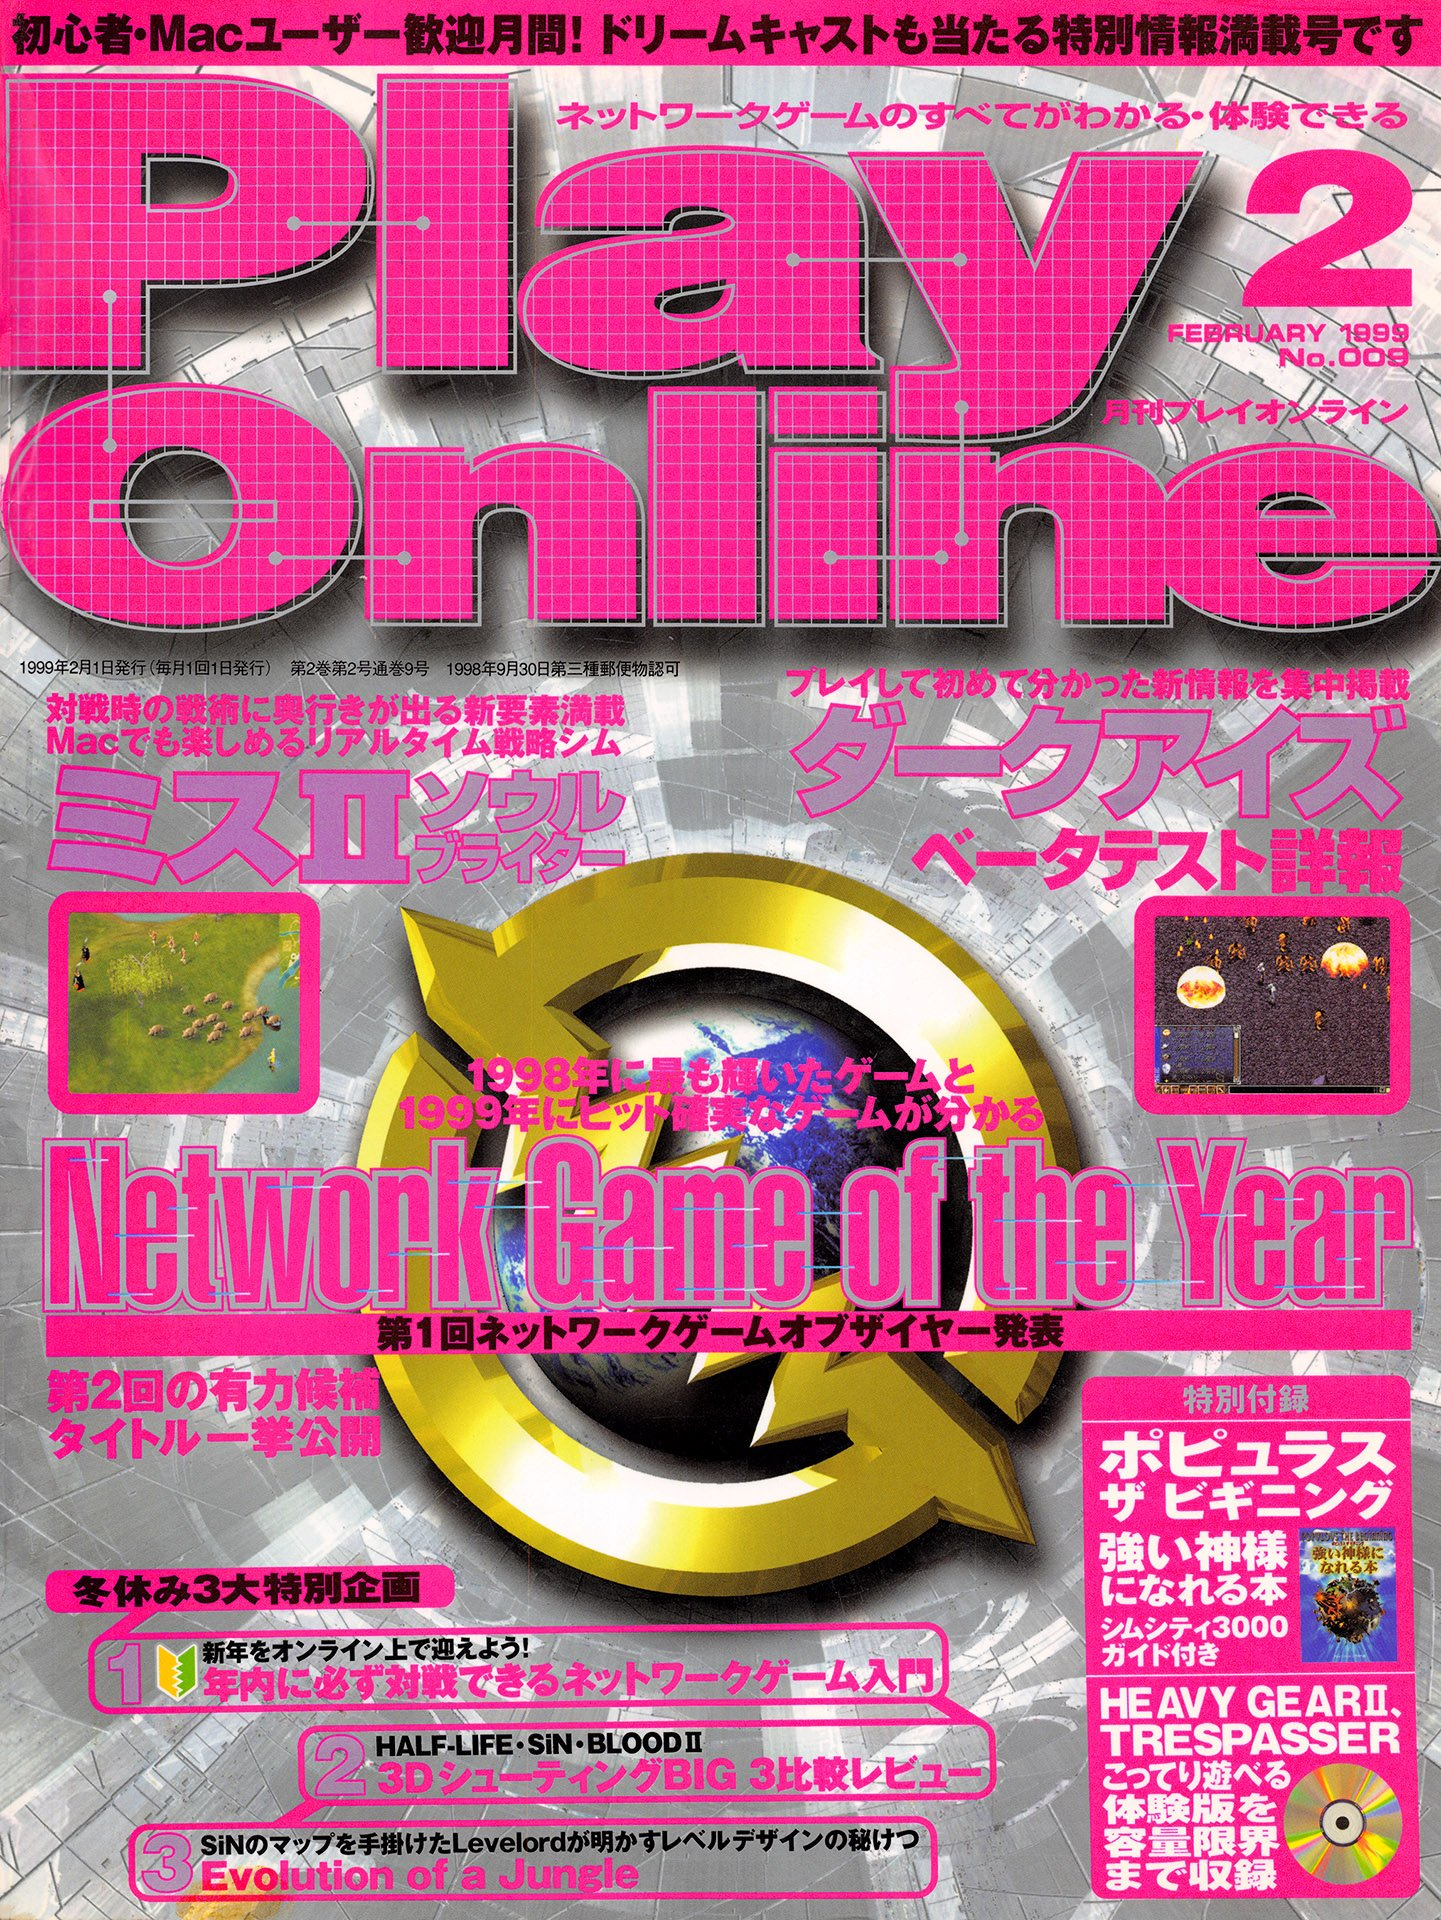 Play Online No.009 (February 1999)